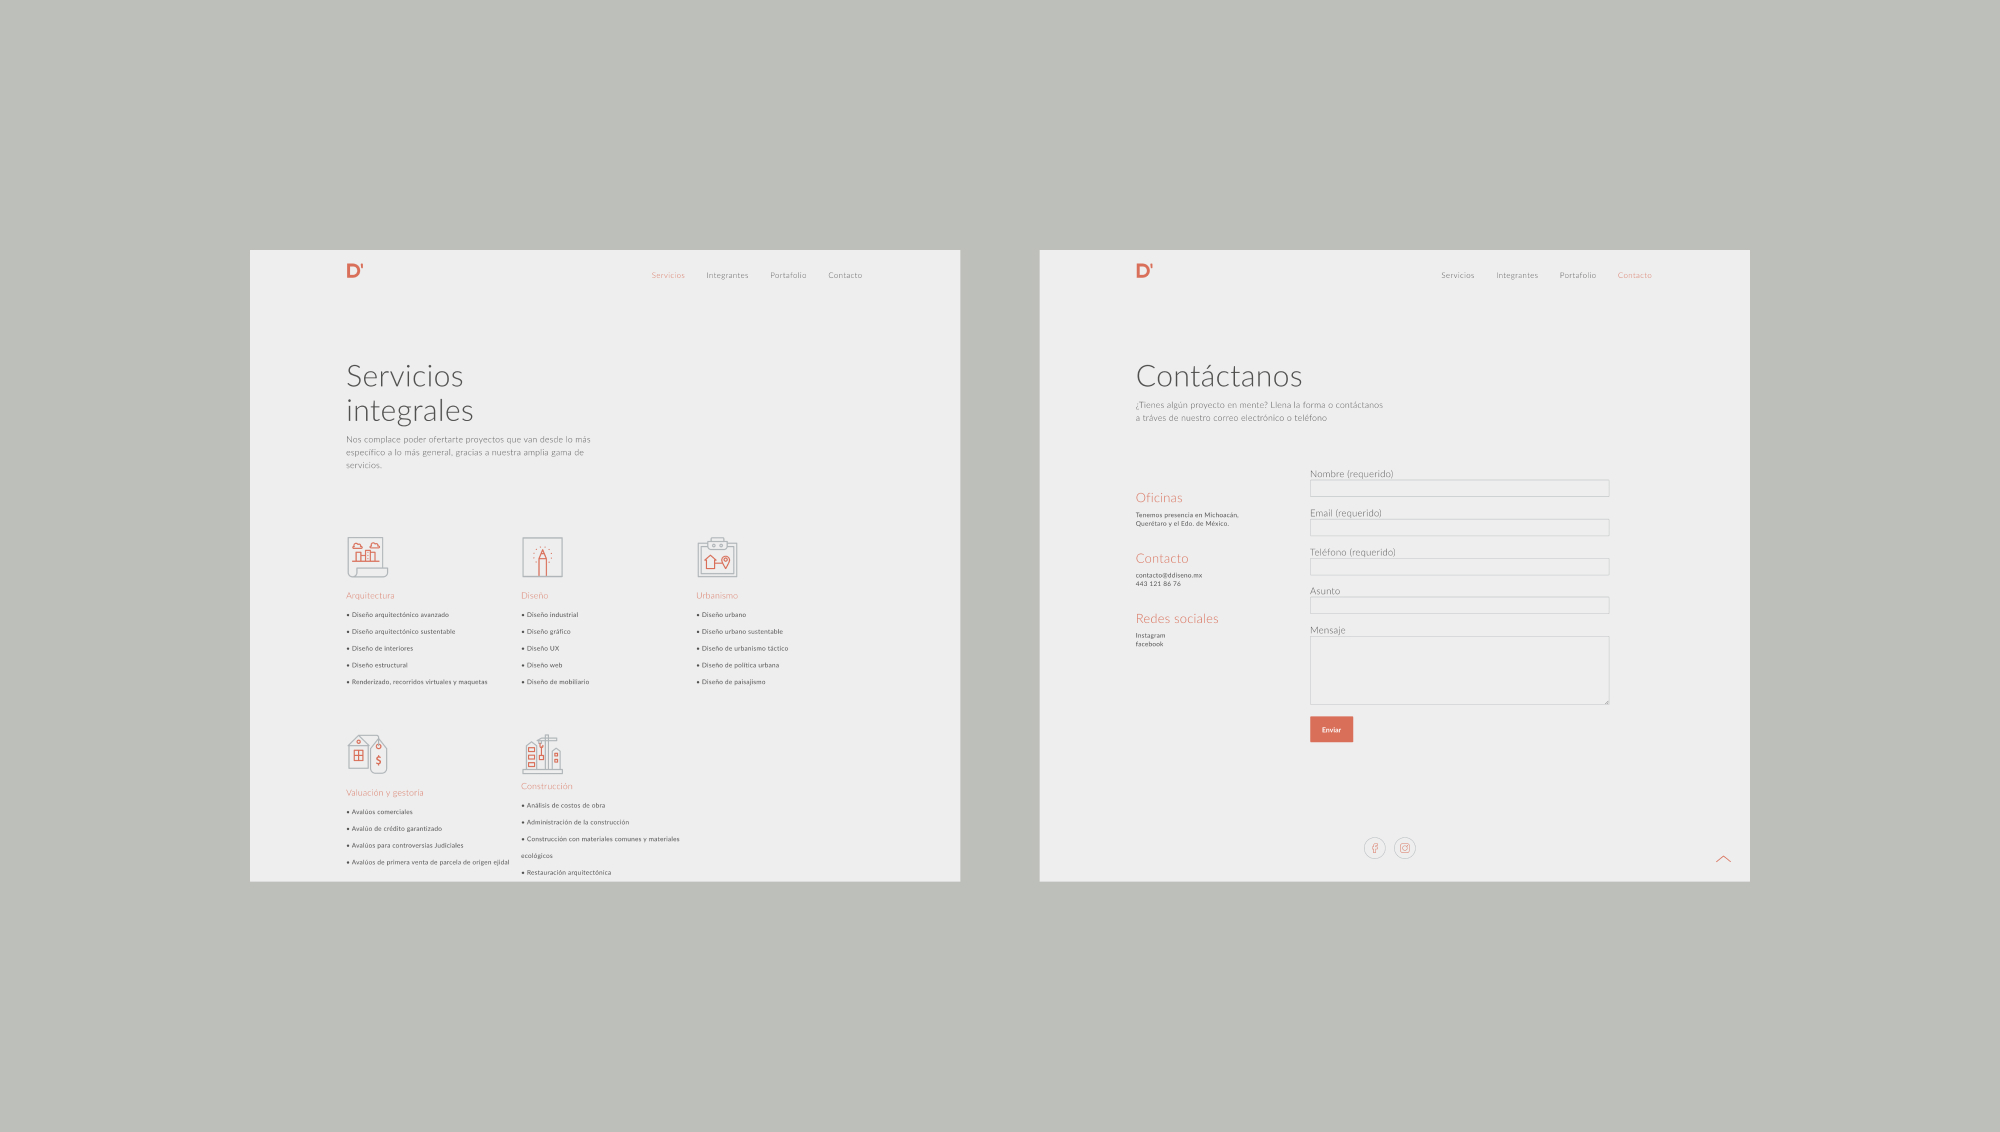 D diseno services and contact pages